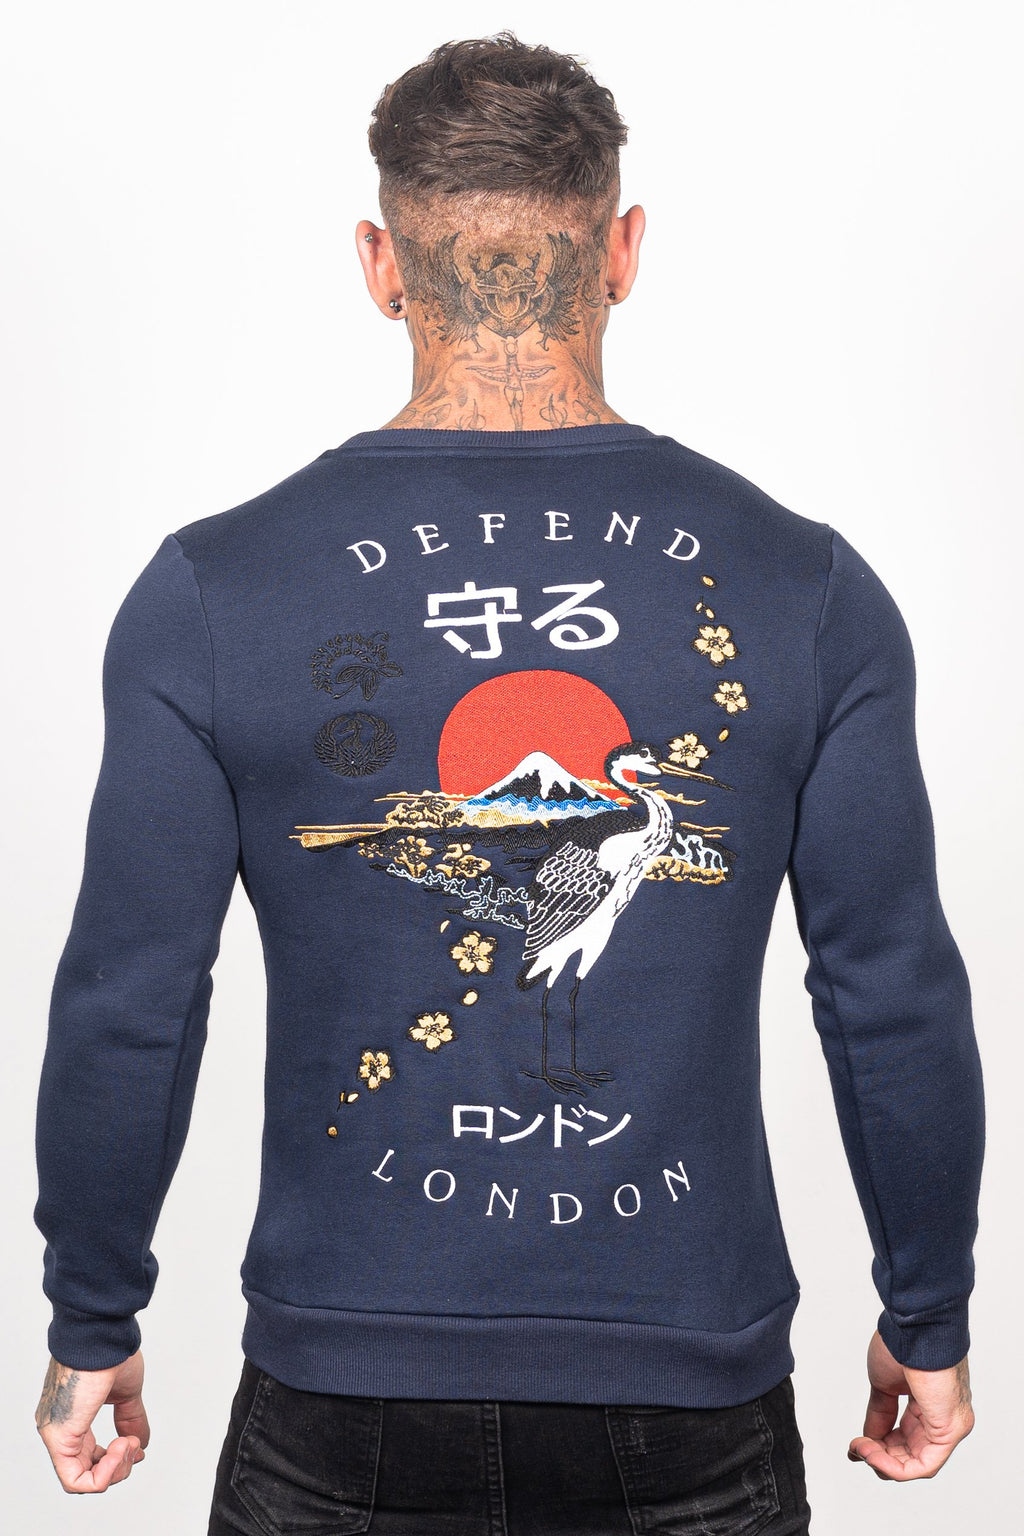 Men's Spirit Sweatshirt in Navy - DEFEND LONDON